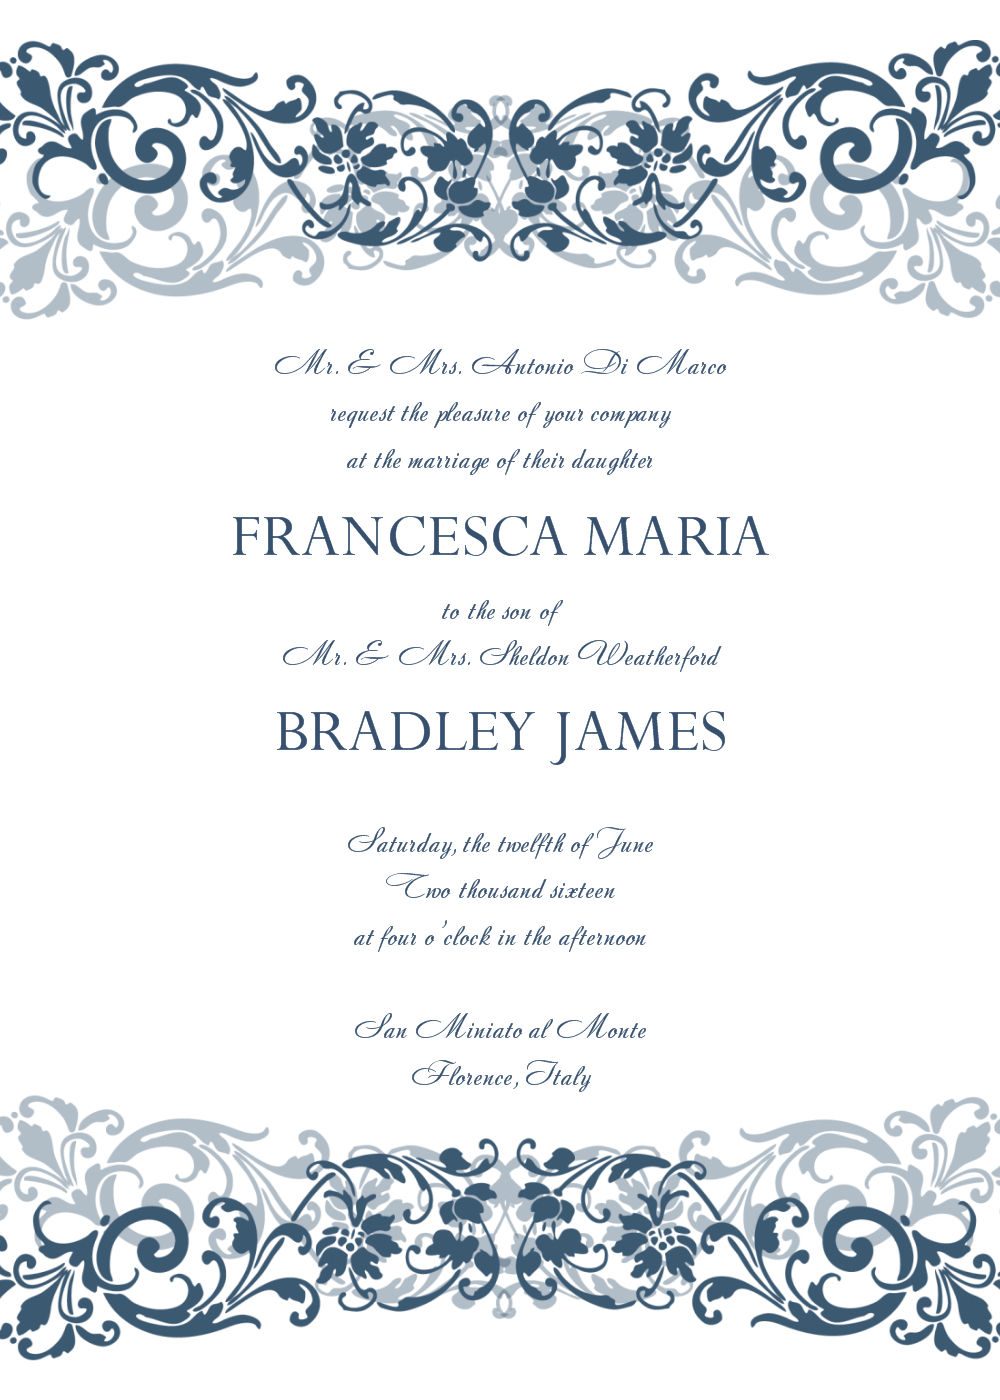 Free Wedding Invitation Templates For Word | Wedding Invitation - Free Printable Wedding Scrolls